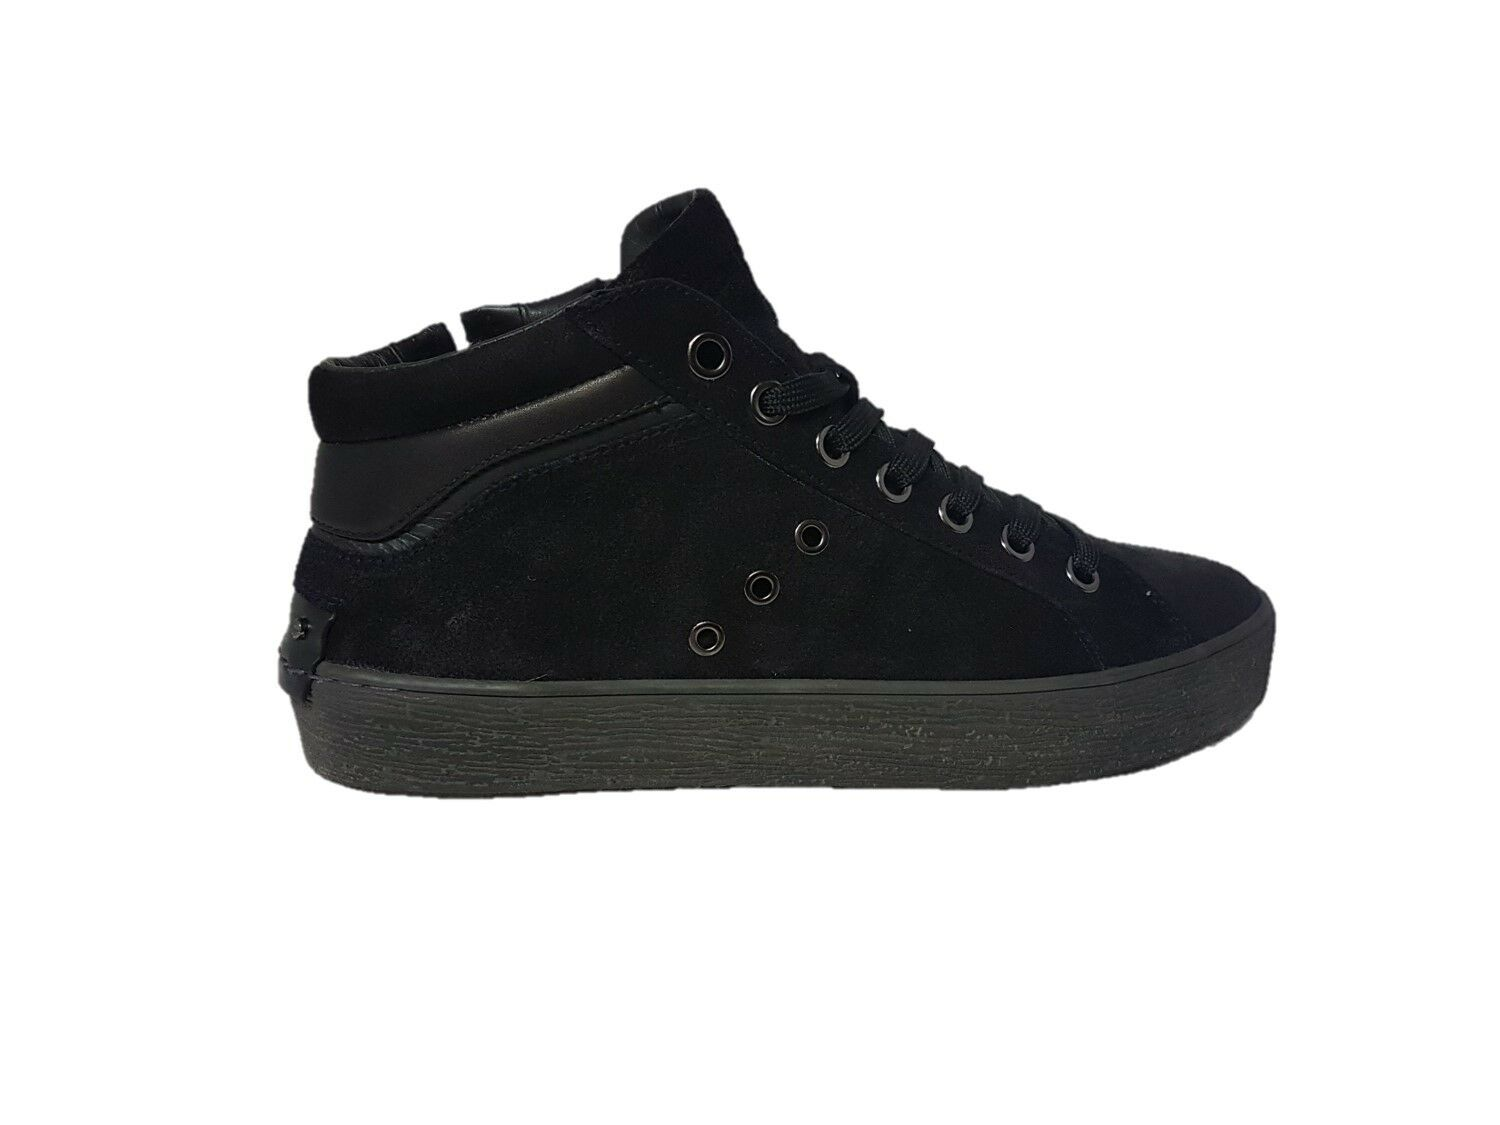 Crime London sneaker uomo alcatraz 11222aa1.40 nero n°43